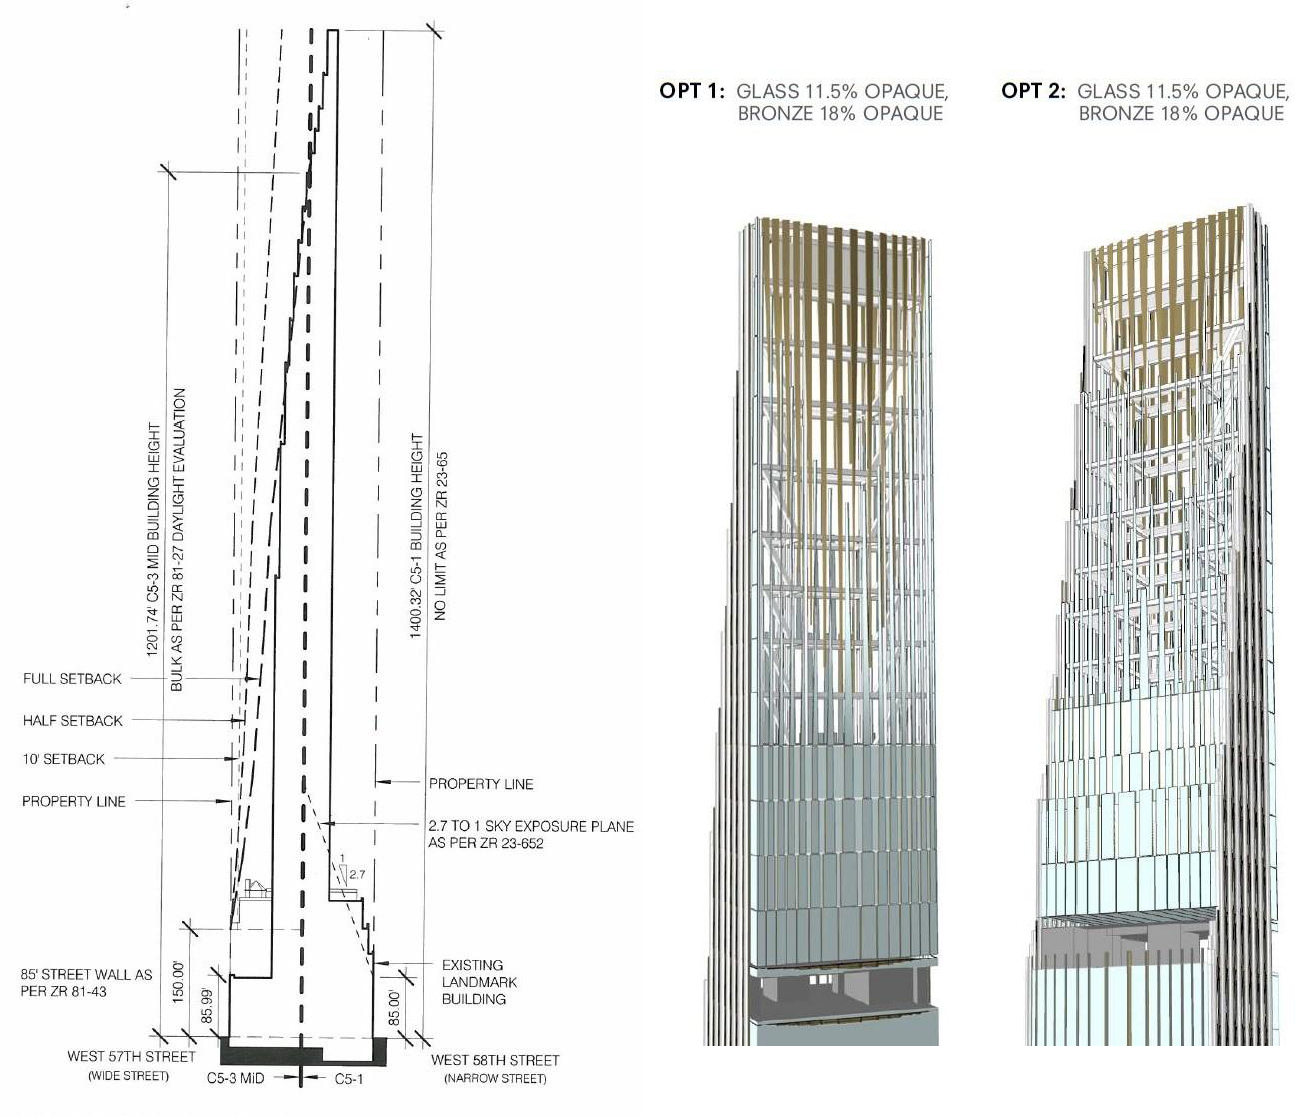 111 West 57th Street Tower New York Ny Pictures To Pin On